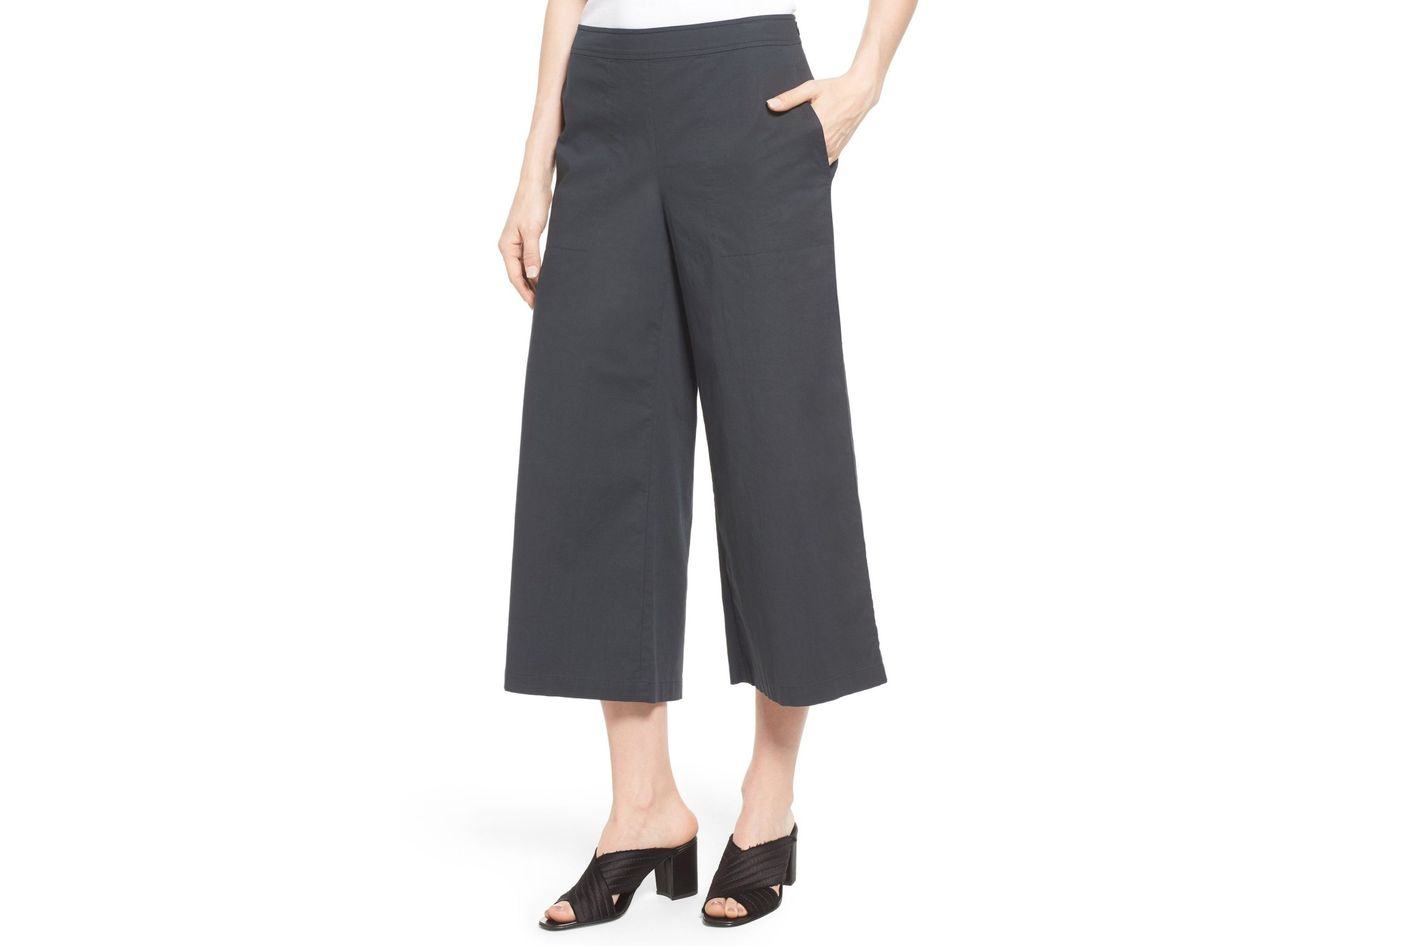 Jun 25, · My conclusion: All a cropped, wide-leg pant needs is a mule or an espadrille, and sometimes a really good pair of sneakers (the European-chic looking ones, not the marshmallow kind). It shines best that way, I've found/5(62).